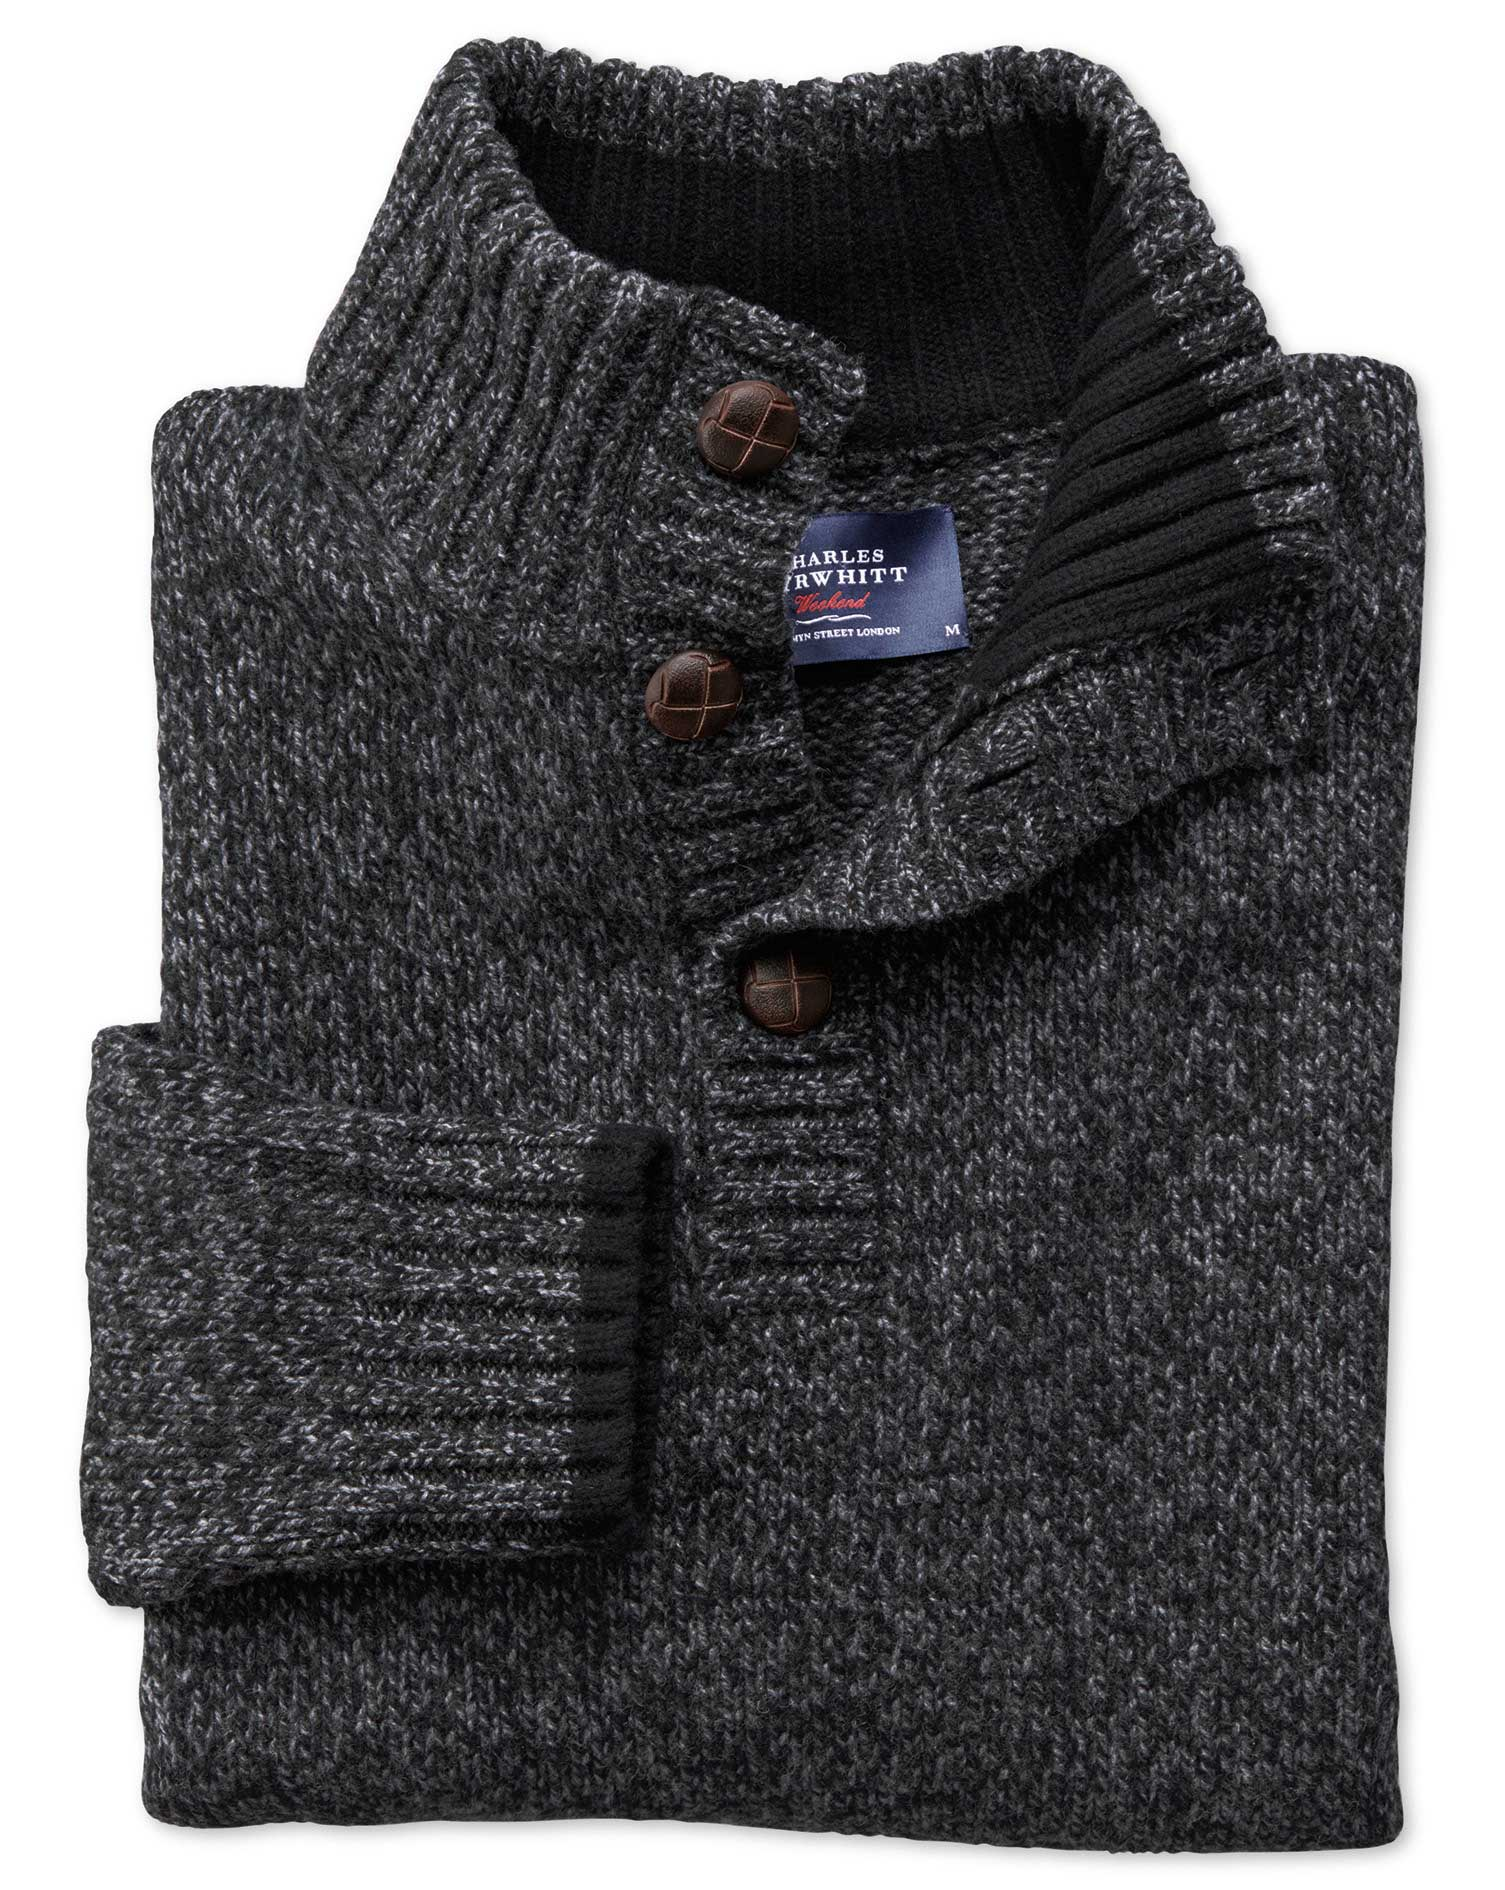 Charcoal Mouline Button Neck Wool Jumper Size Small by Charles Tyrwhitt